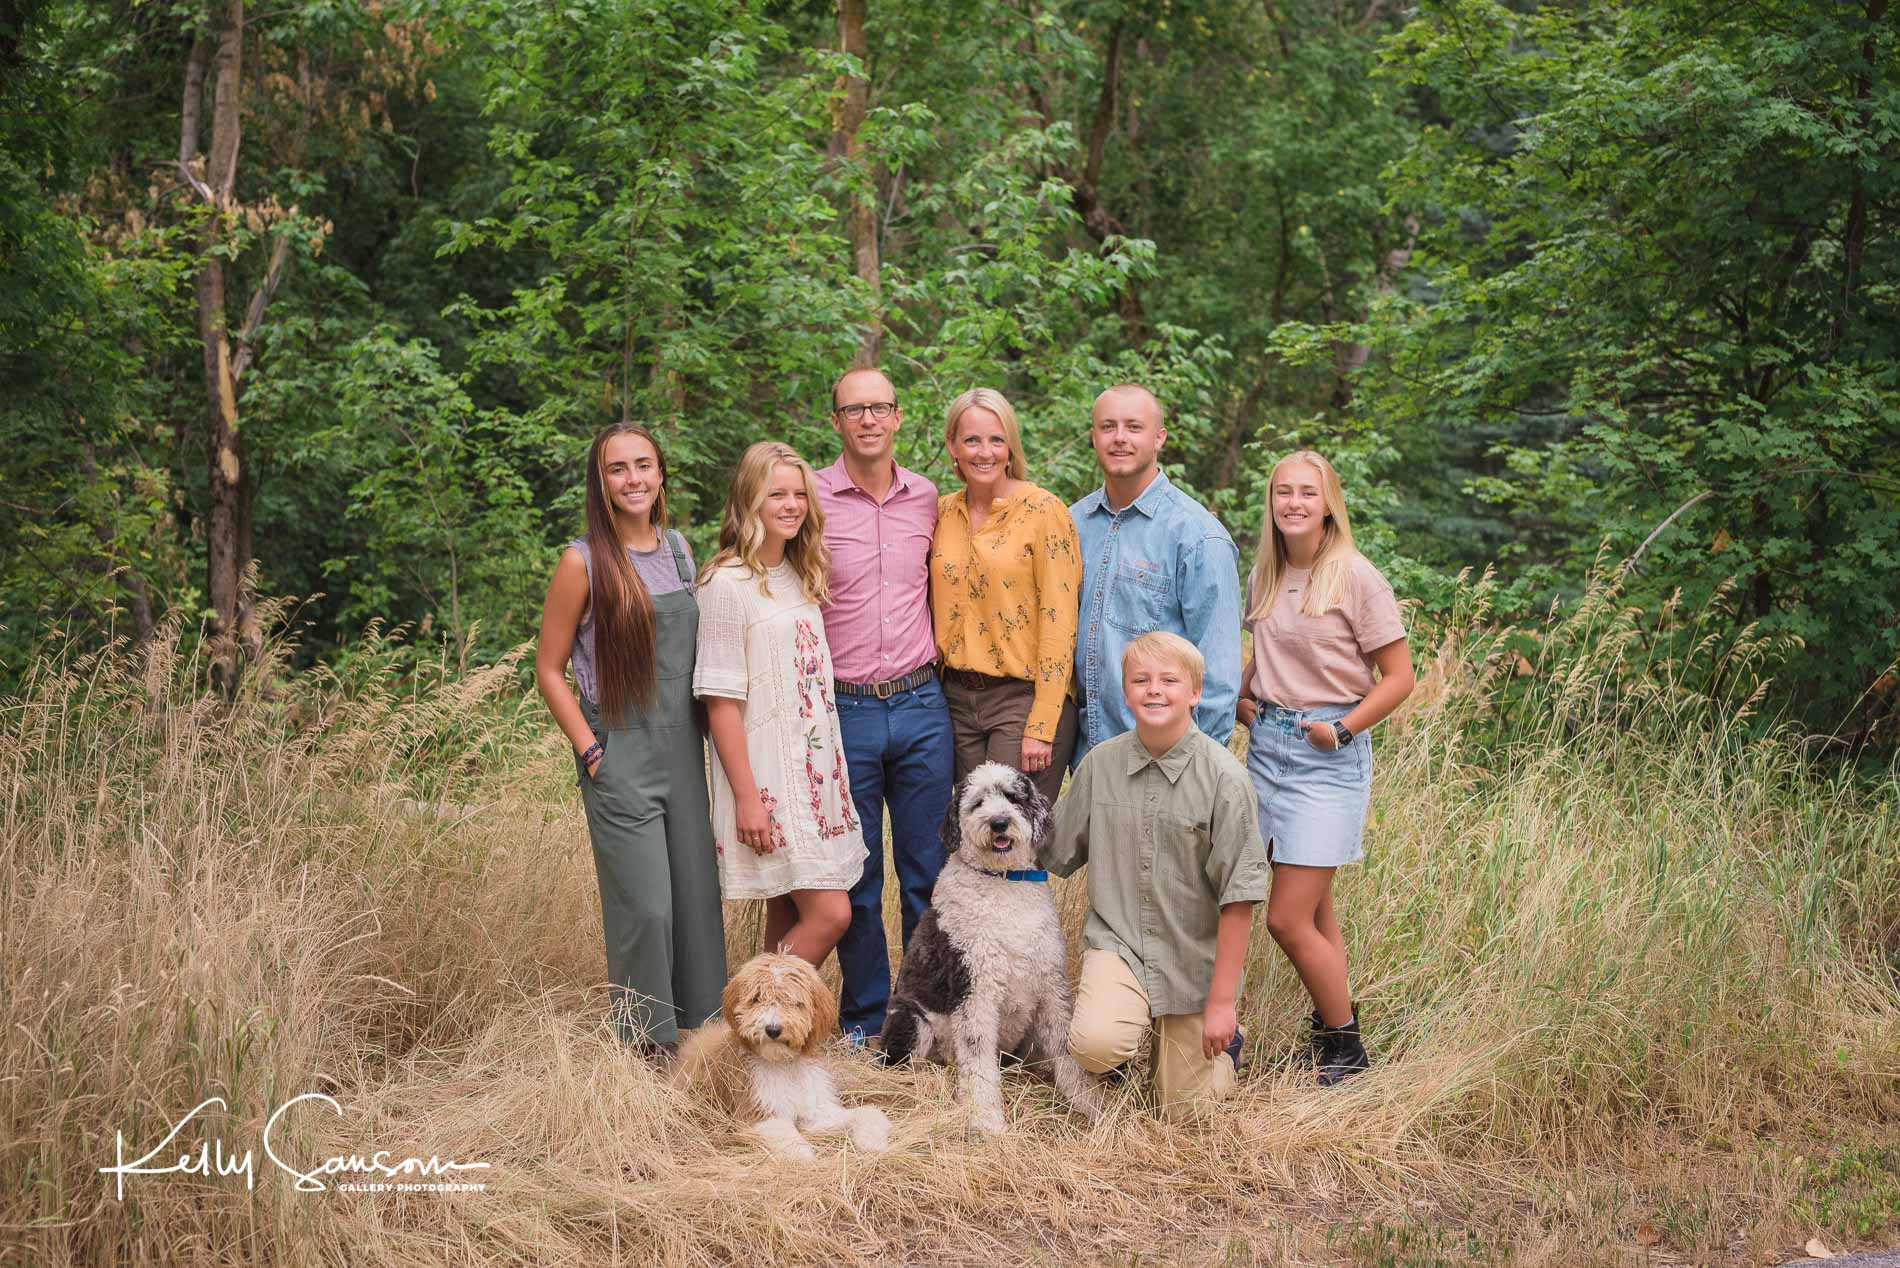 A family with dogs in front of trees for Bountiful portrait photography.